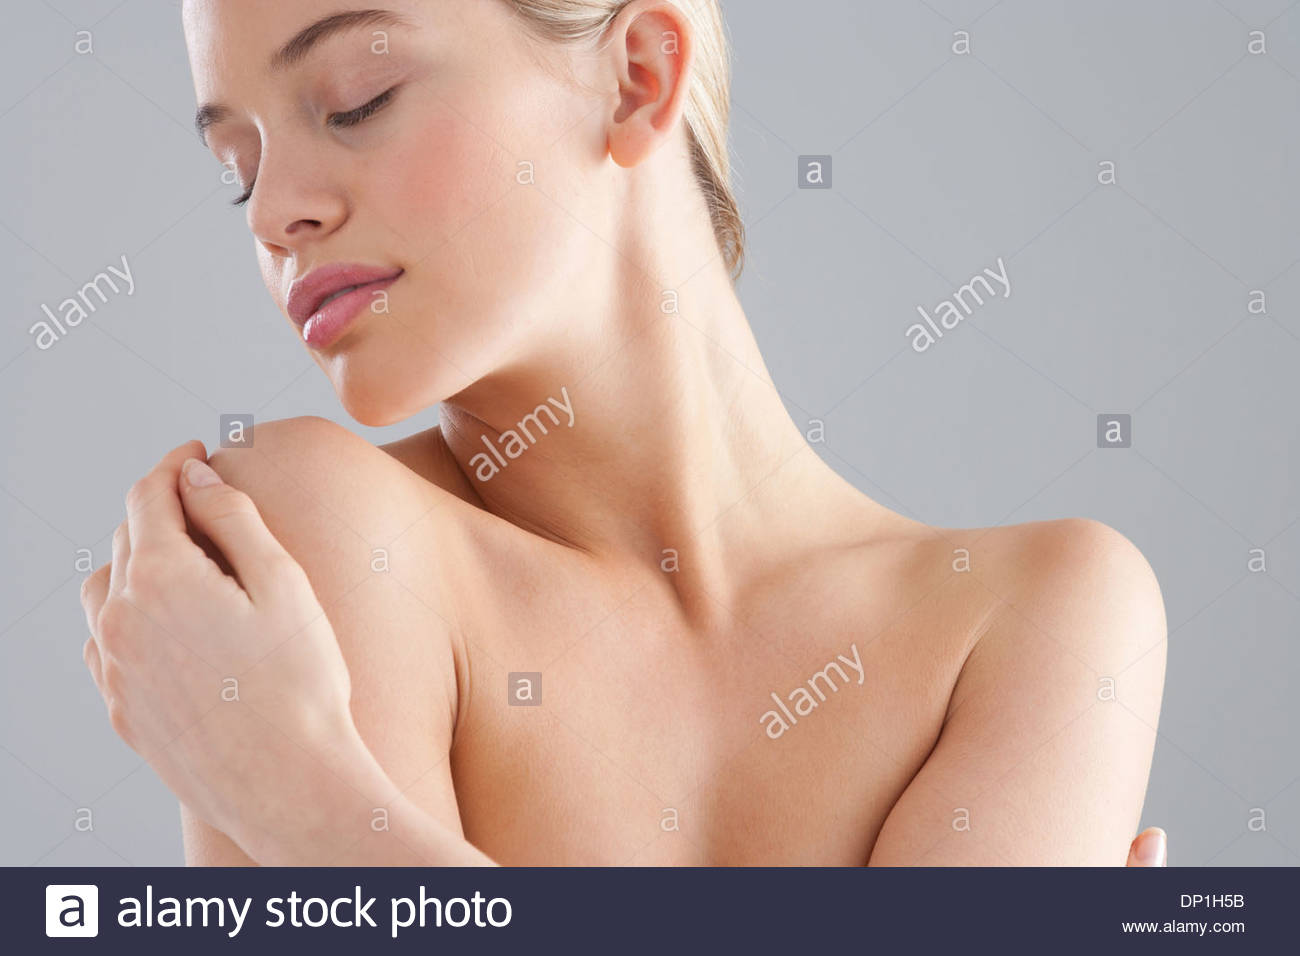 Portrait of bare chested woman - Stock Image